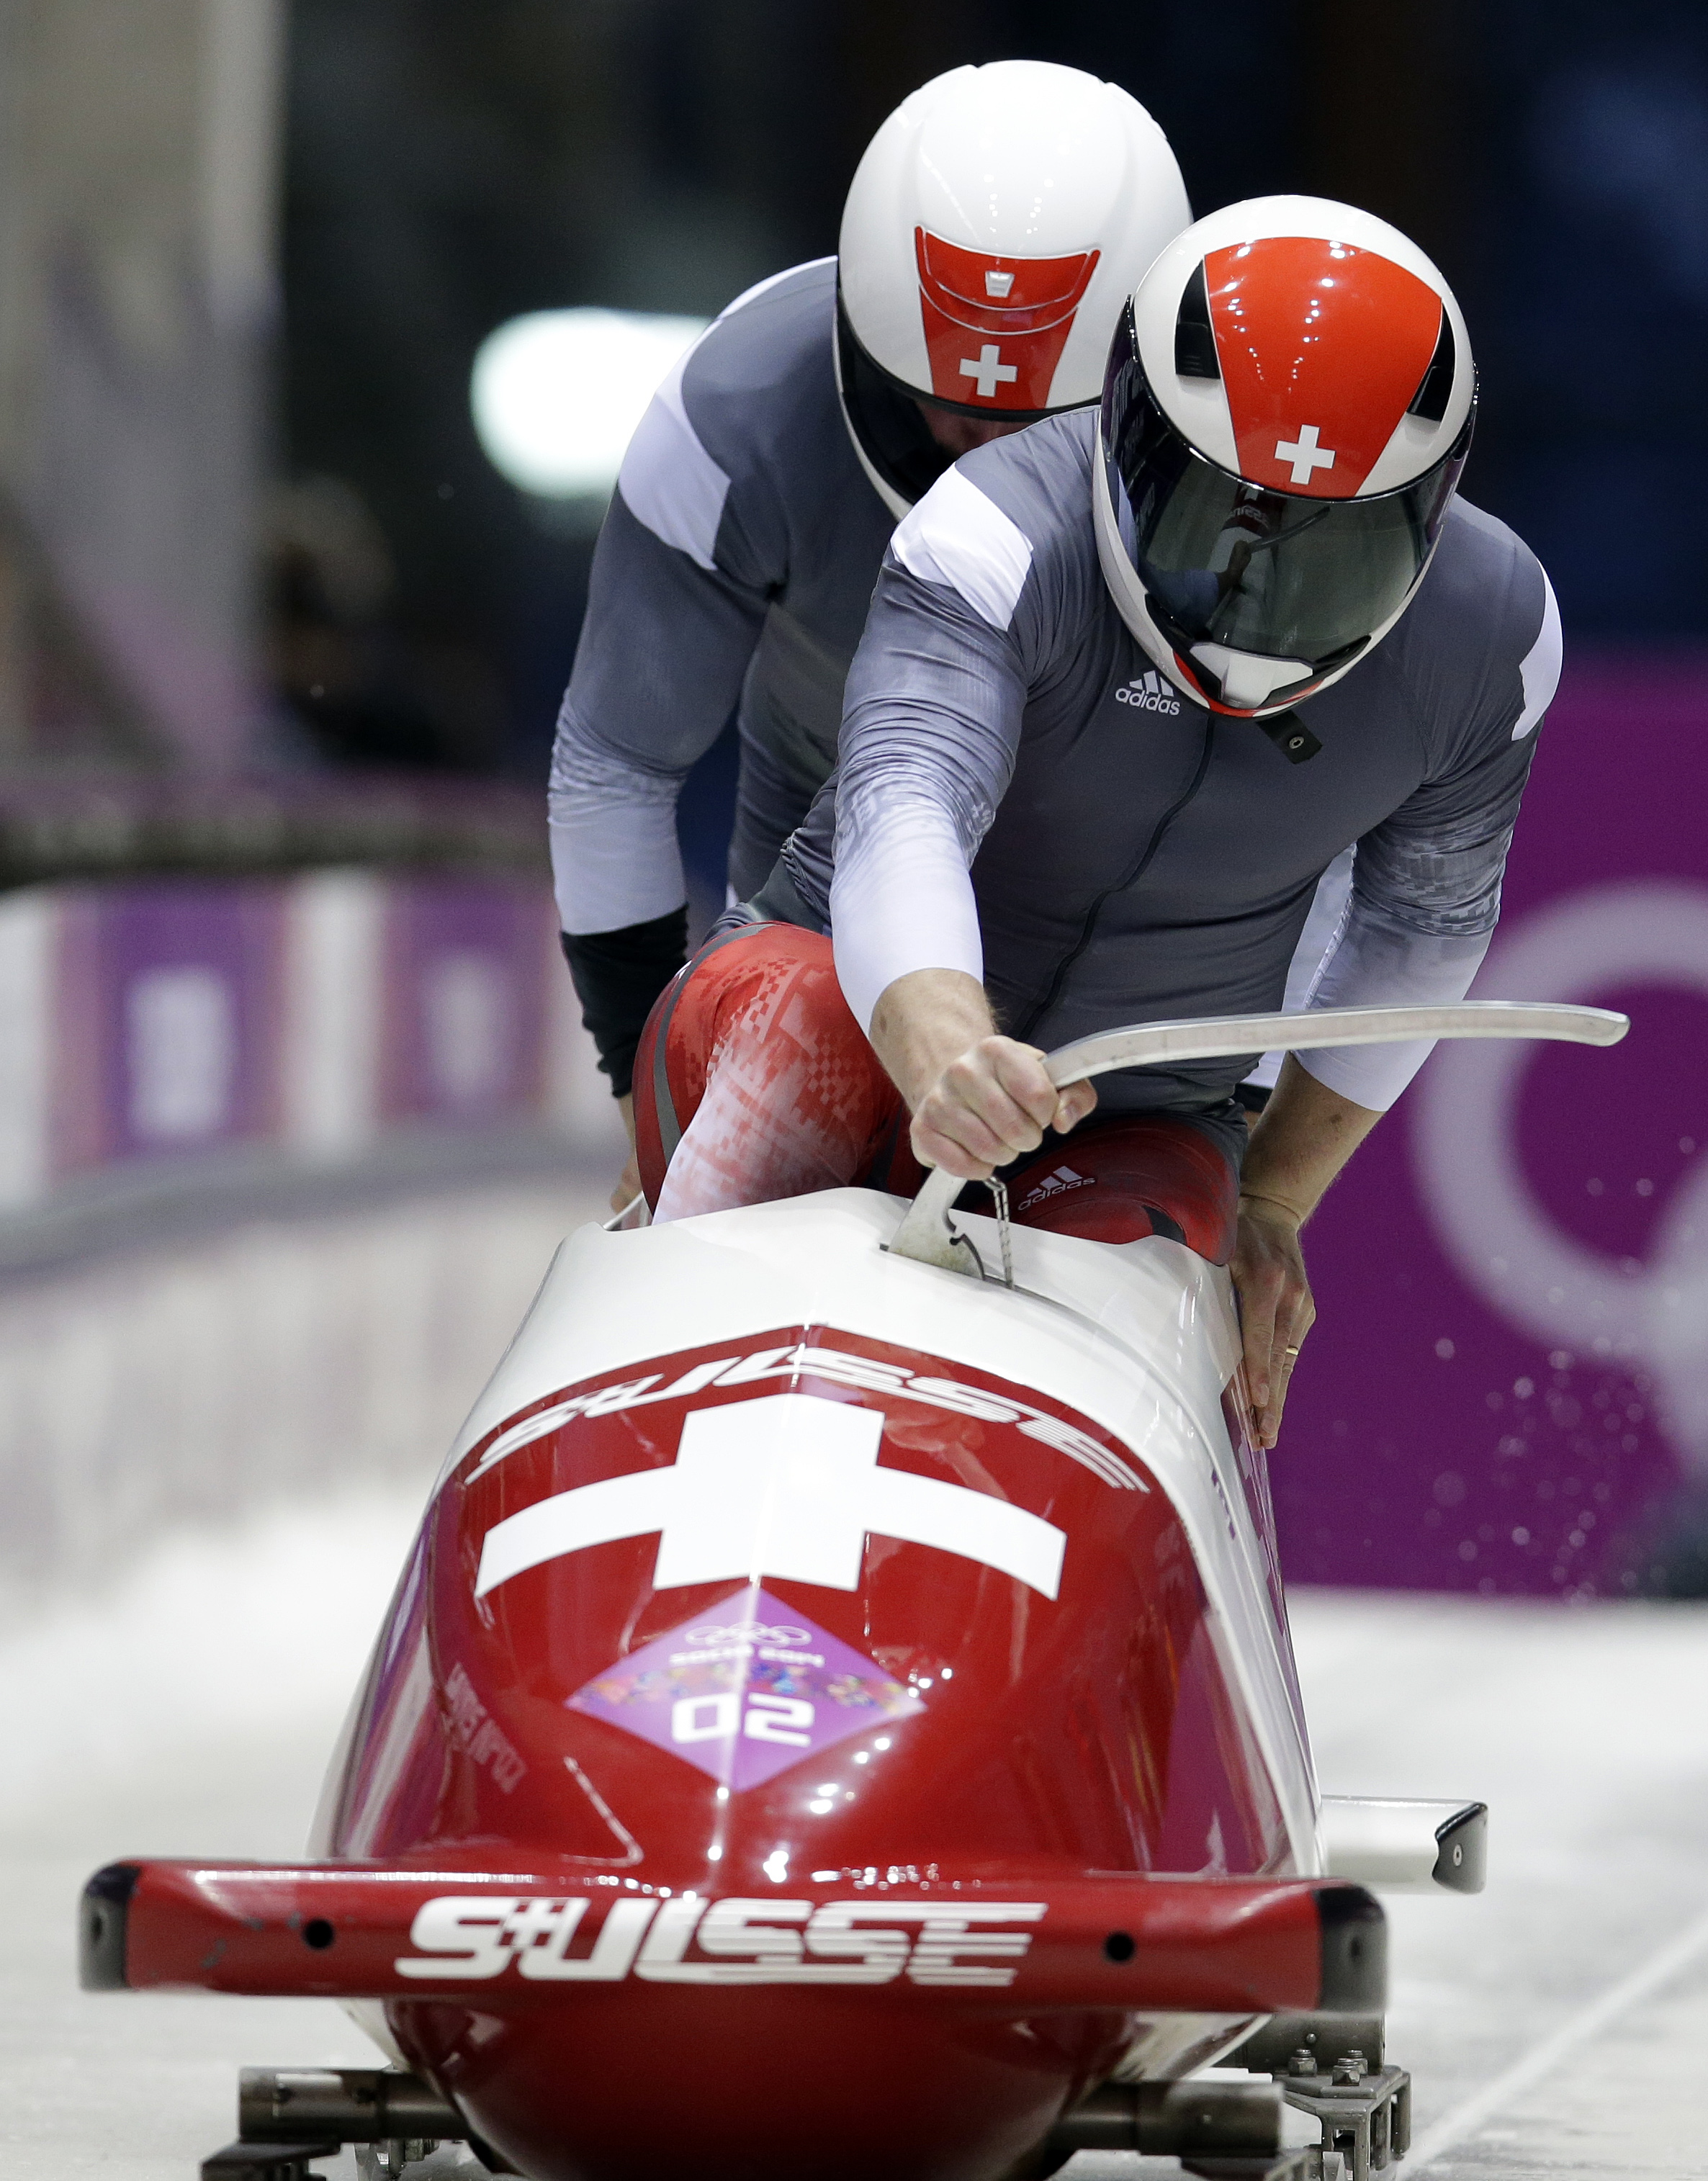 The team from Switzerland SUI-1, piloted by Beat Hefti and brakeman Alex Baumann, start their third run during the men's two-man bobsled competition at the 2014 Winter Olympics, Monday, Feb. 17, 2014, in Krasnaya Polyana, Russia. (AP Photo/Michael Sohn)